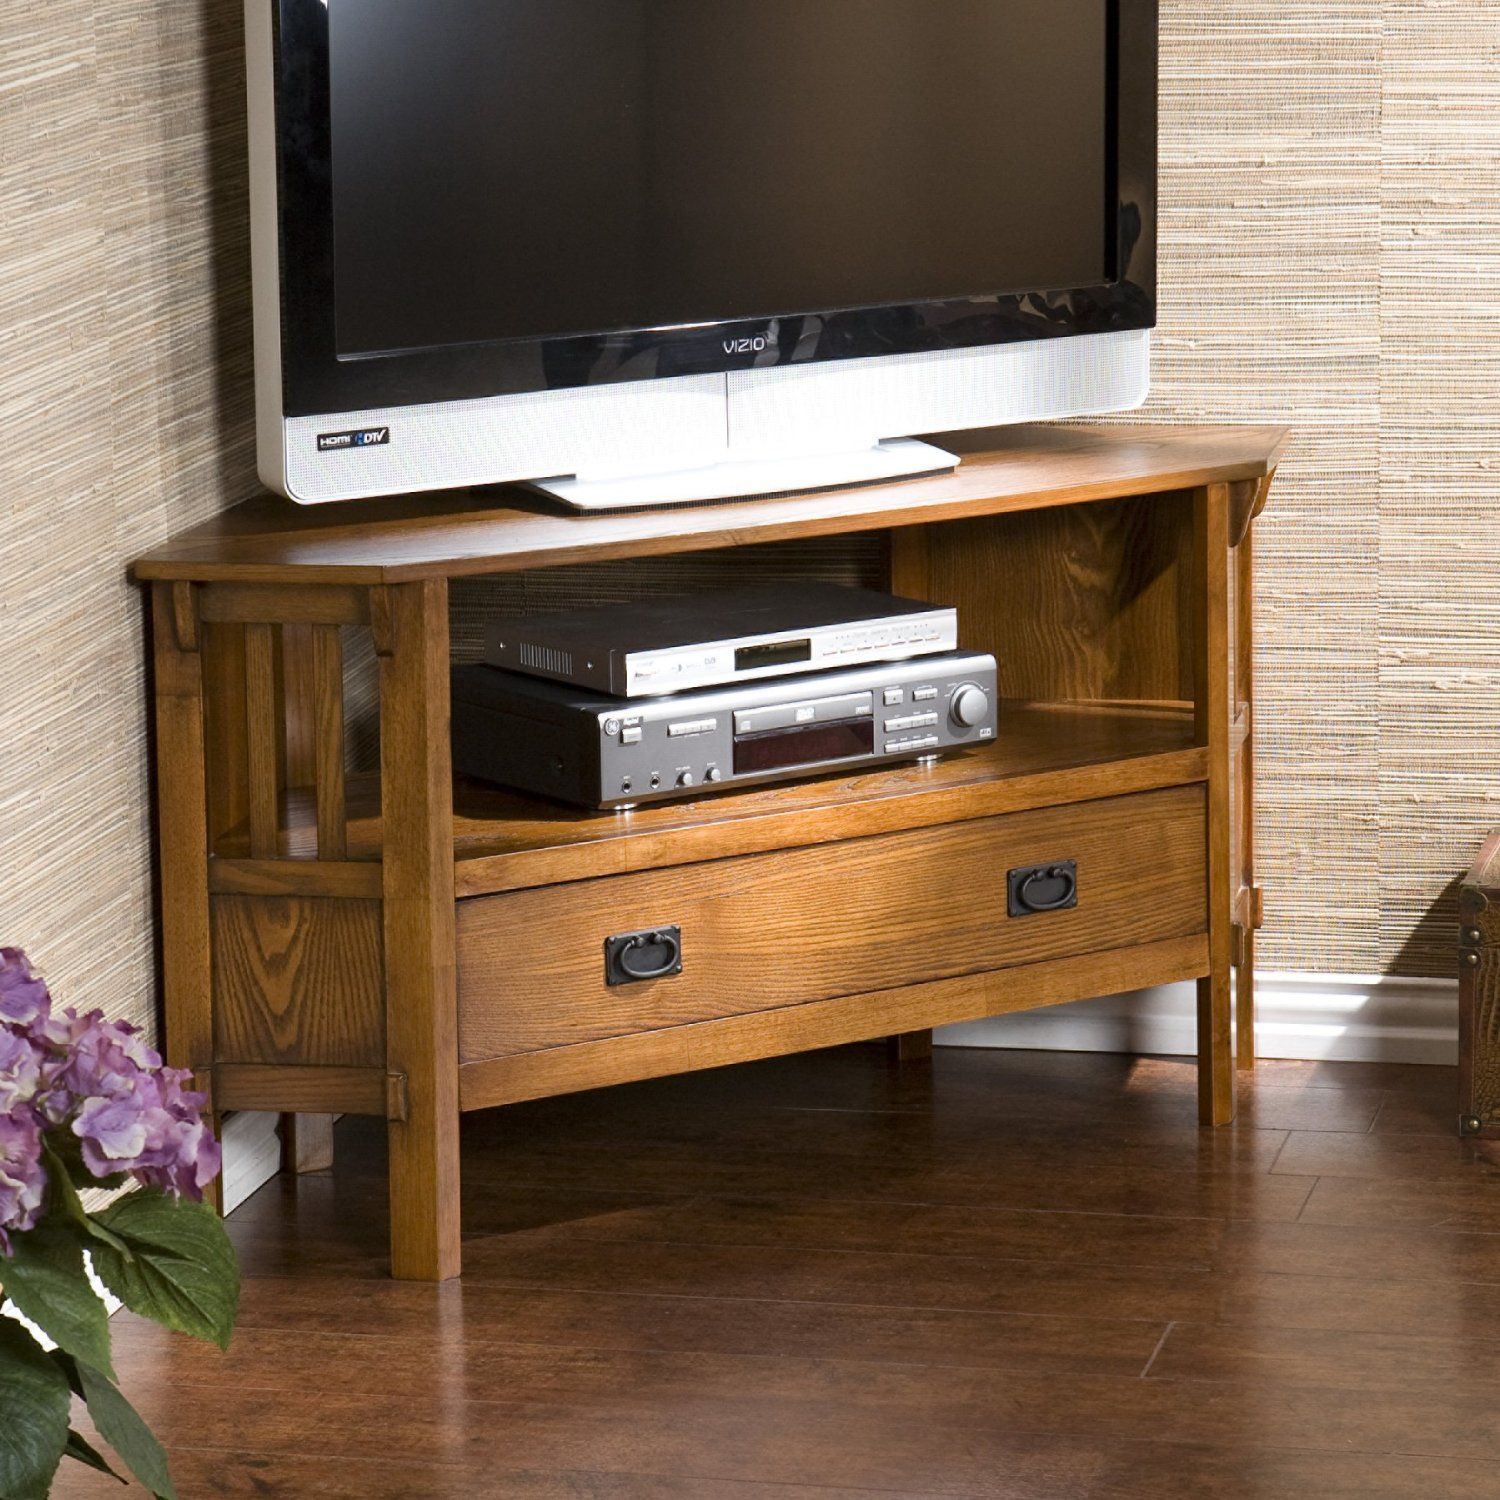 Very Popular Corner Mission Style Tv Stand It S A Pretty Piece Of